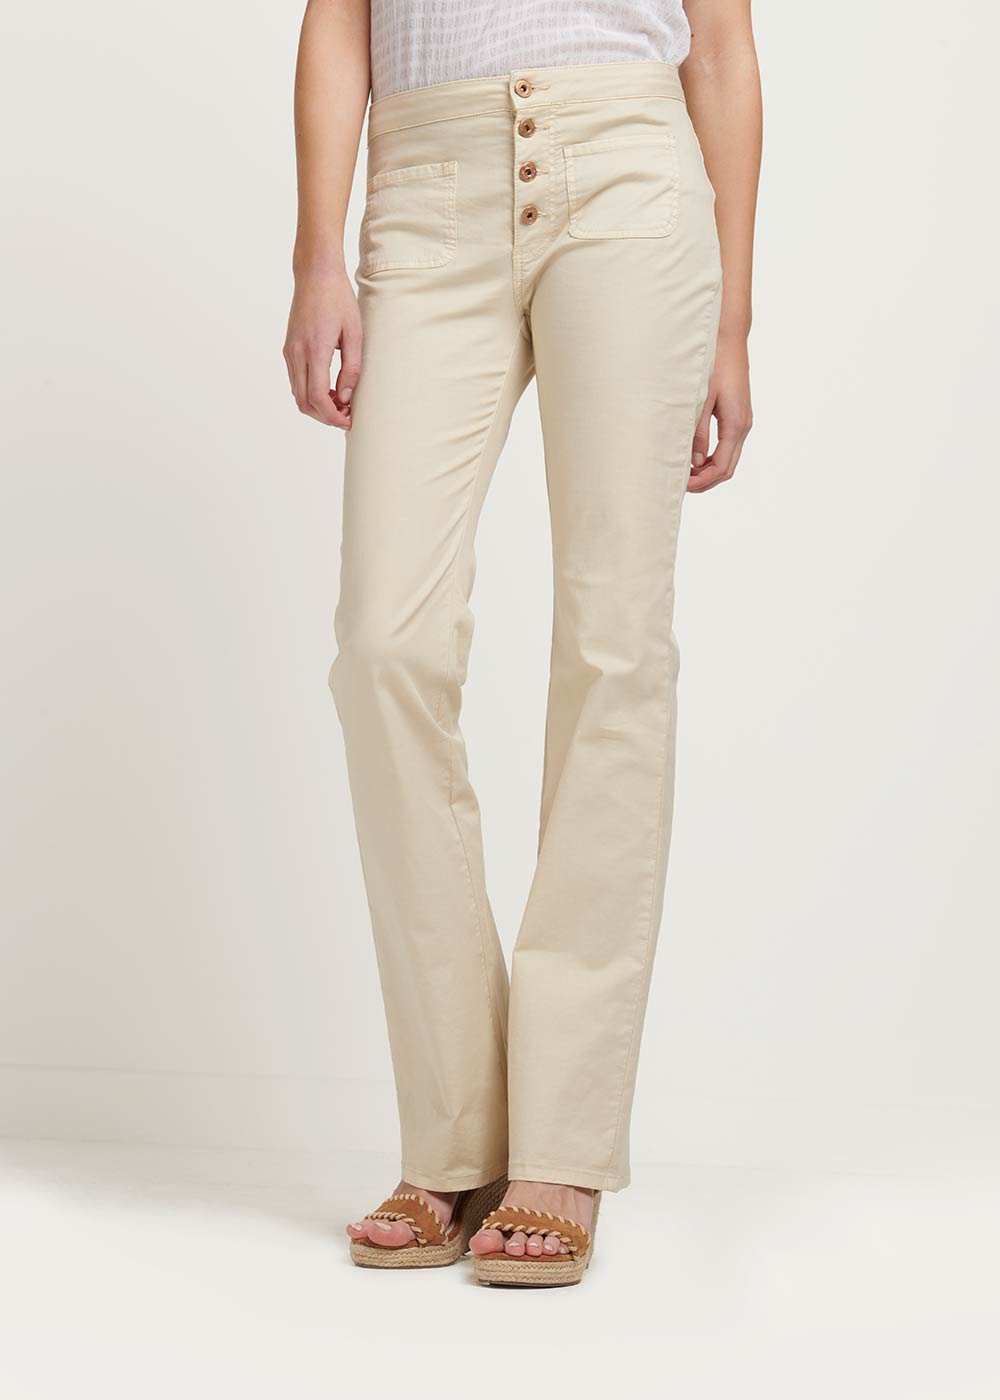 Victoria trousers with small pockets - Ginger - Woman